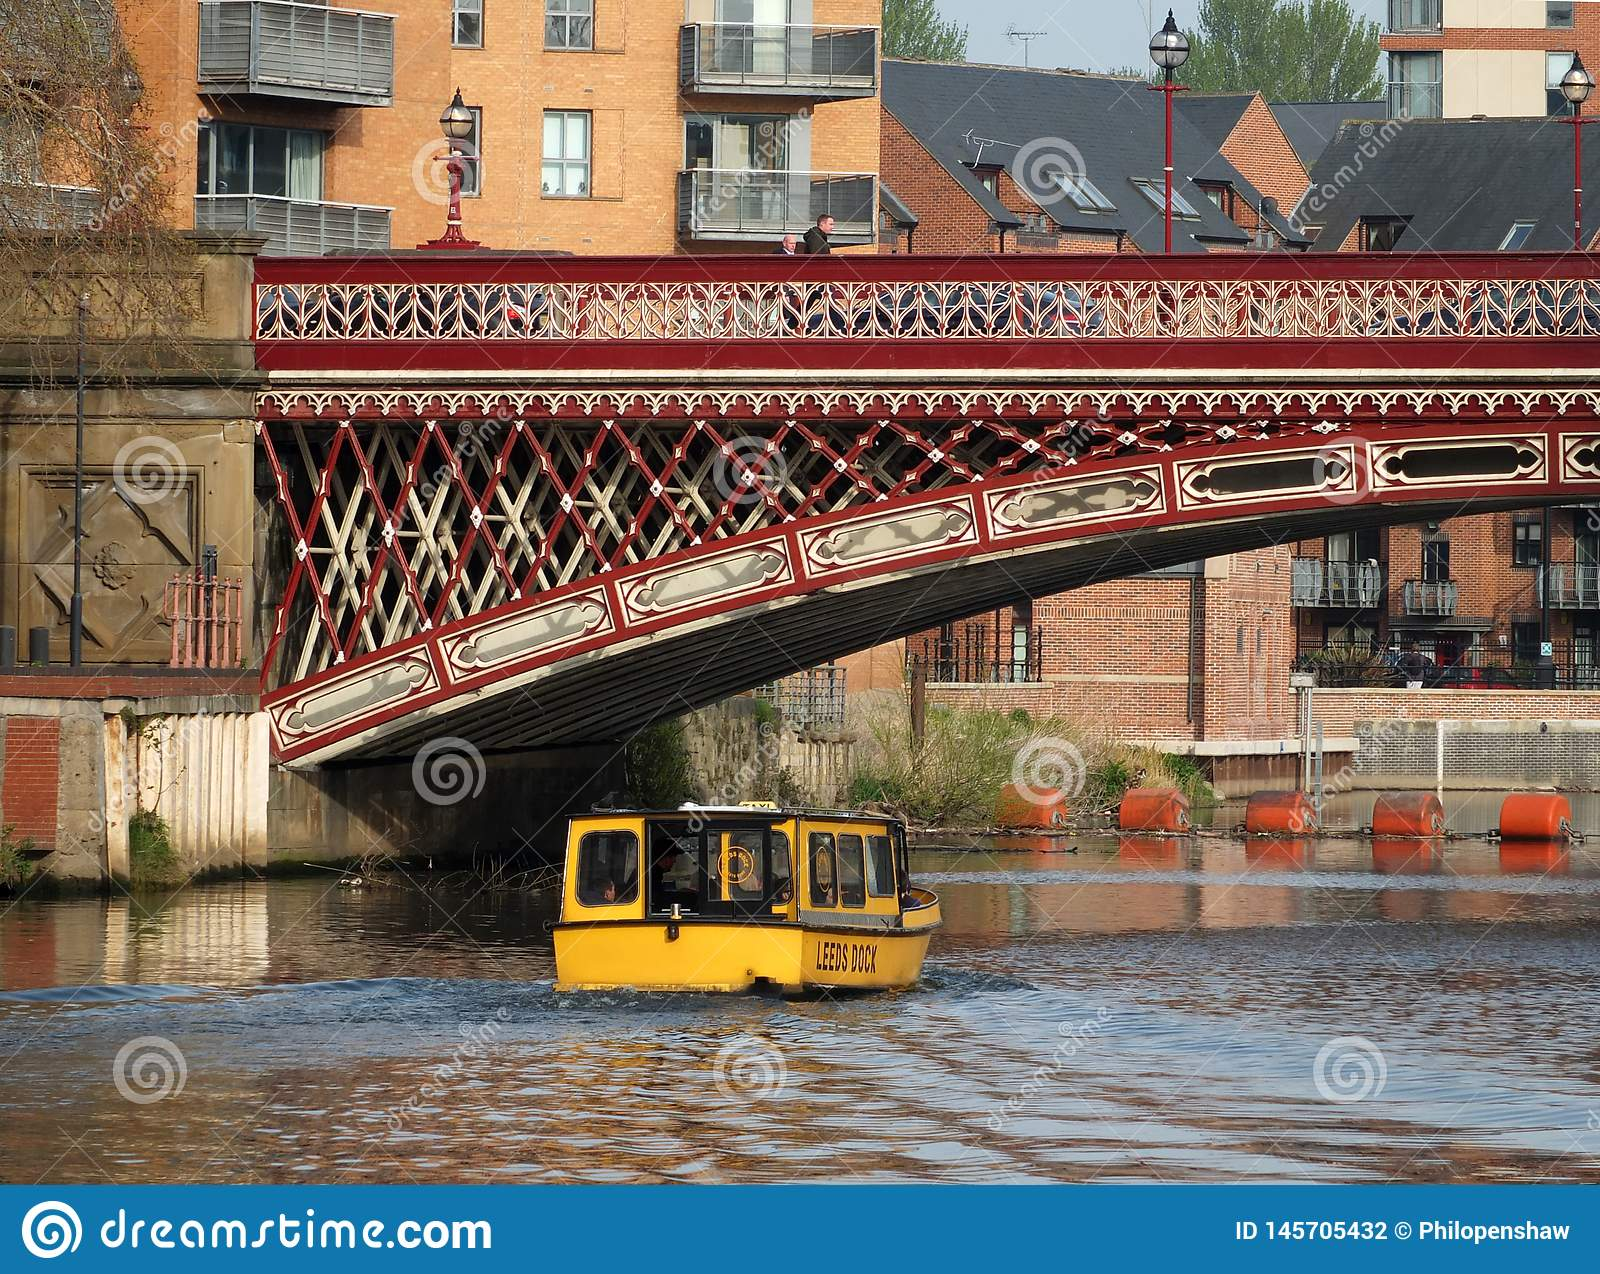 a yellow water taxi boat passing under crown point bridge over the river aire in leeds